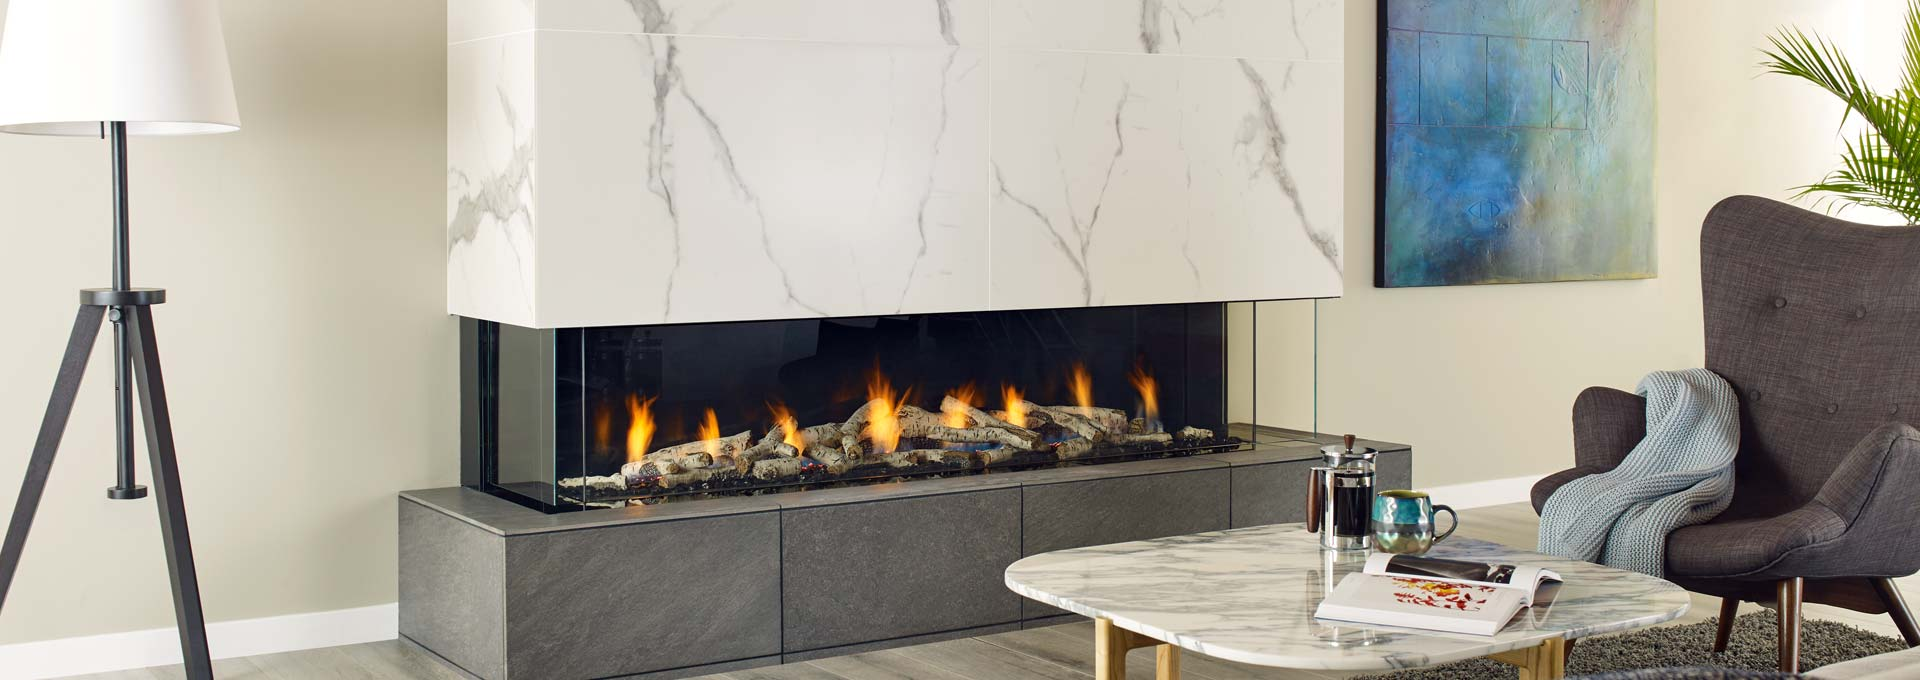 Groovy Gas Fireplaces Regency Fireplace Products Download Free Architecture Designs Scobabritishbridgeorg